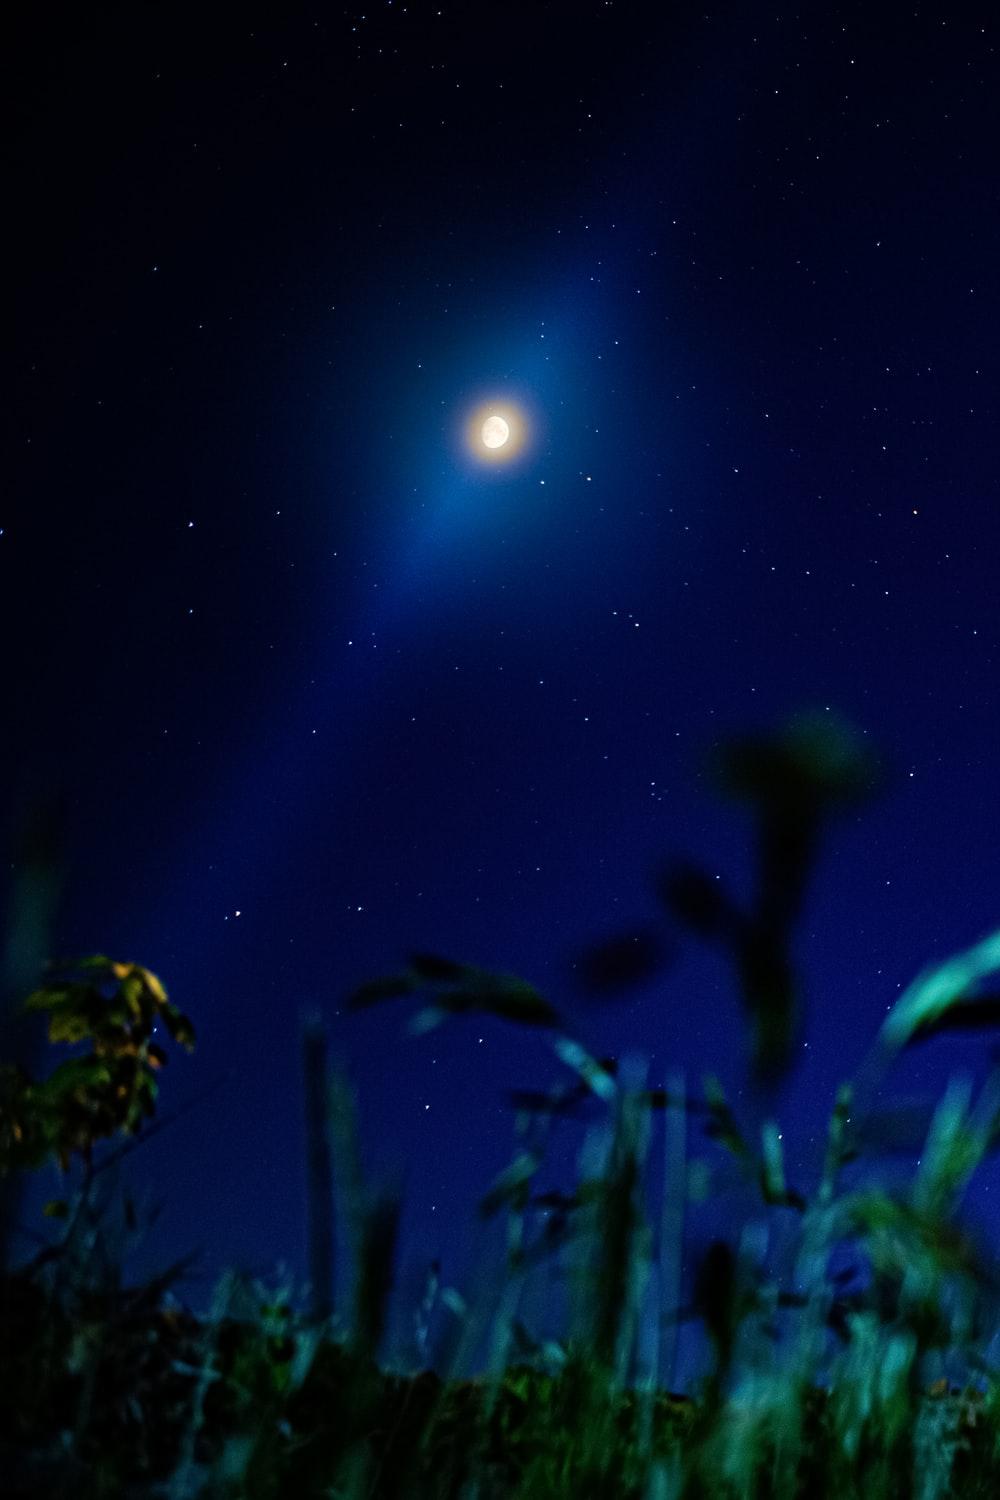 green plant under blue sky during nighttime